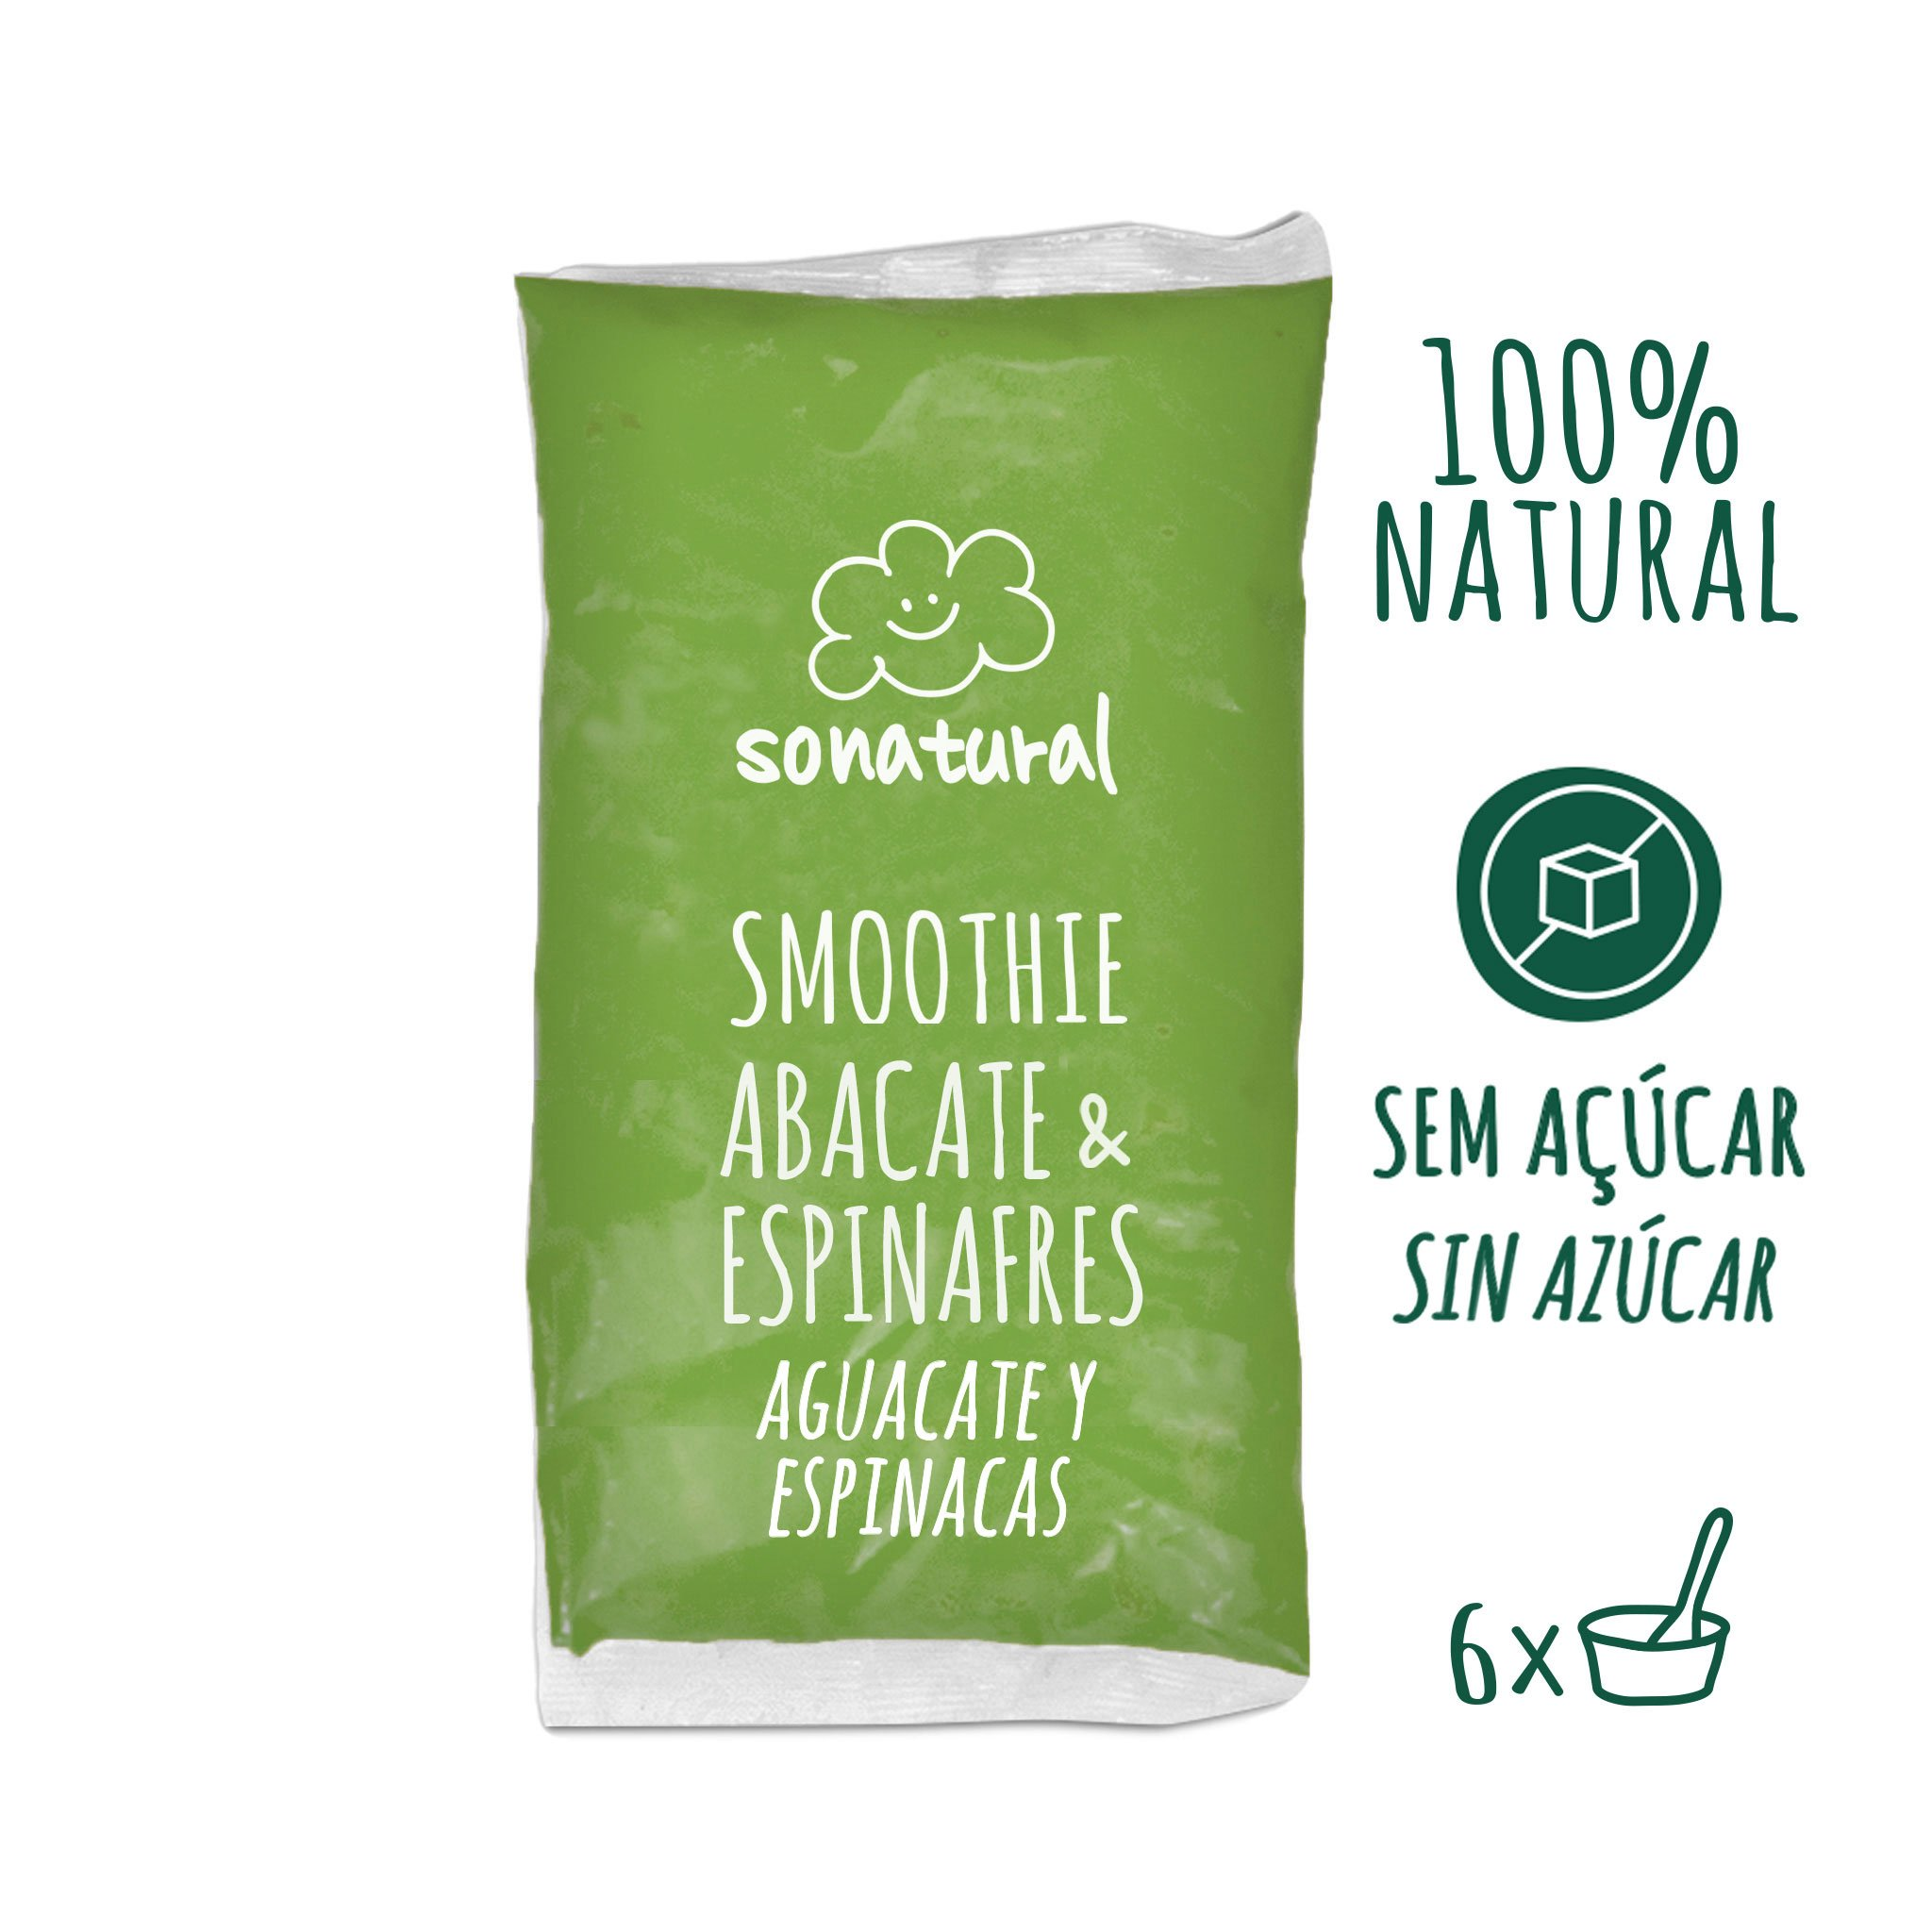 Sonatural Smoothie Abacate e Espinafres 1kg